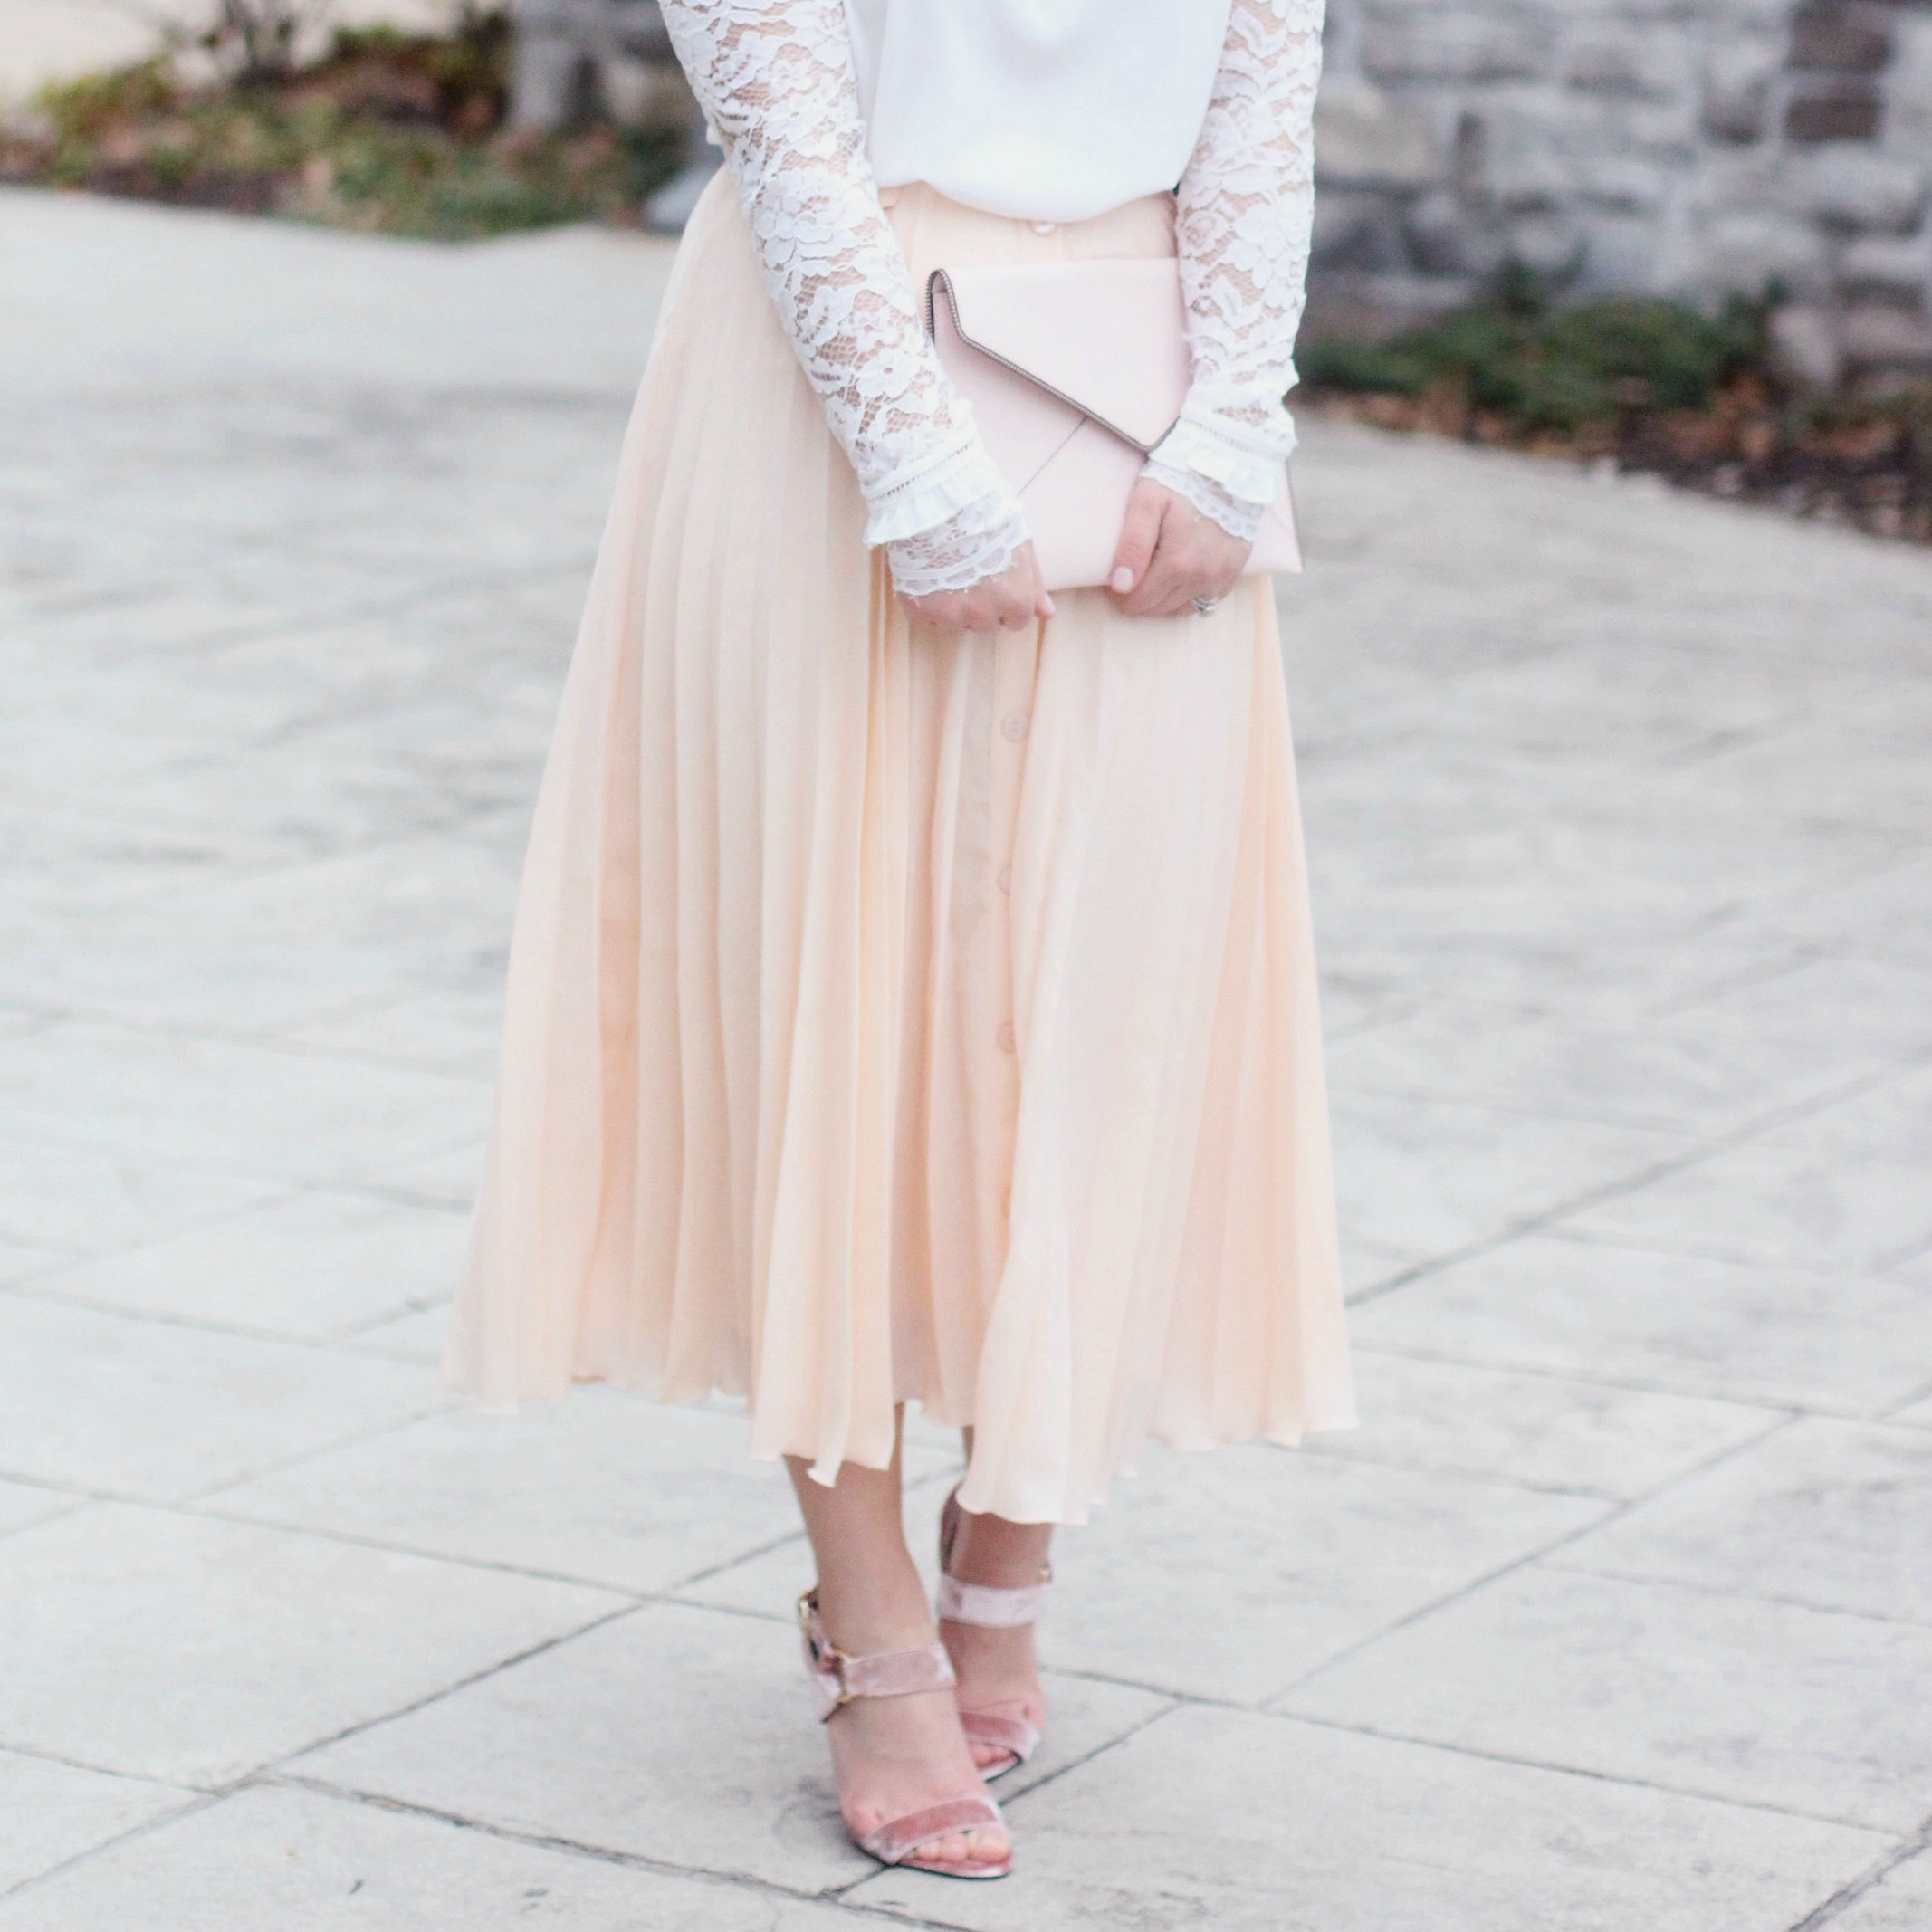 Zoe With Love styles this romantic look featuring a white lace top and pleated midi skirt., accessorizing with a simple envelope clutch and velvet heels.